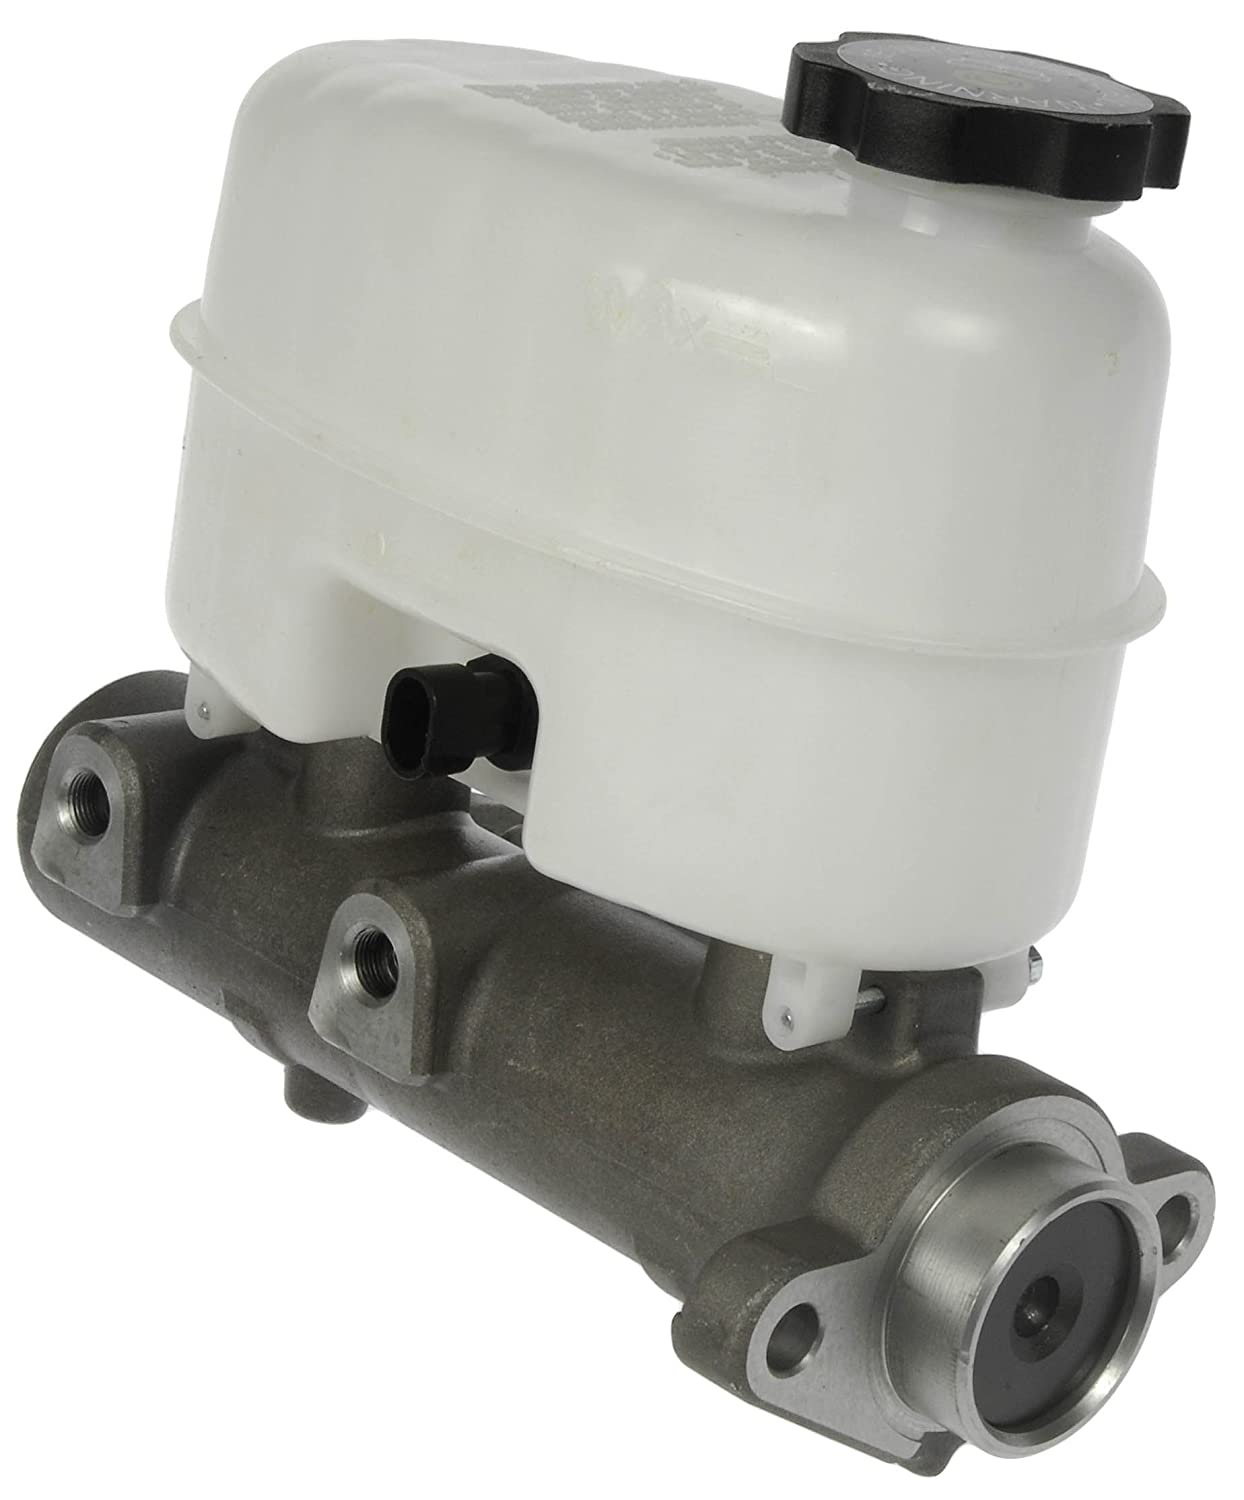 Dorman M630595 Brake Master Cylinder for Select Chevrolet//GMC Models